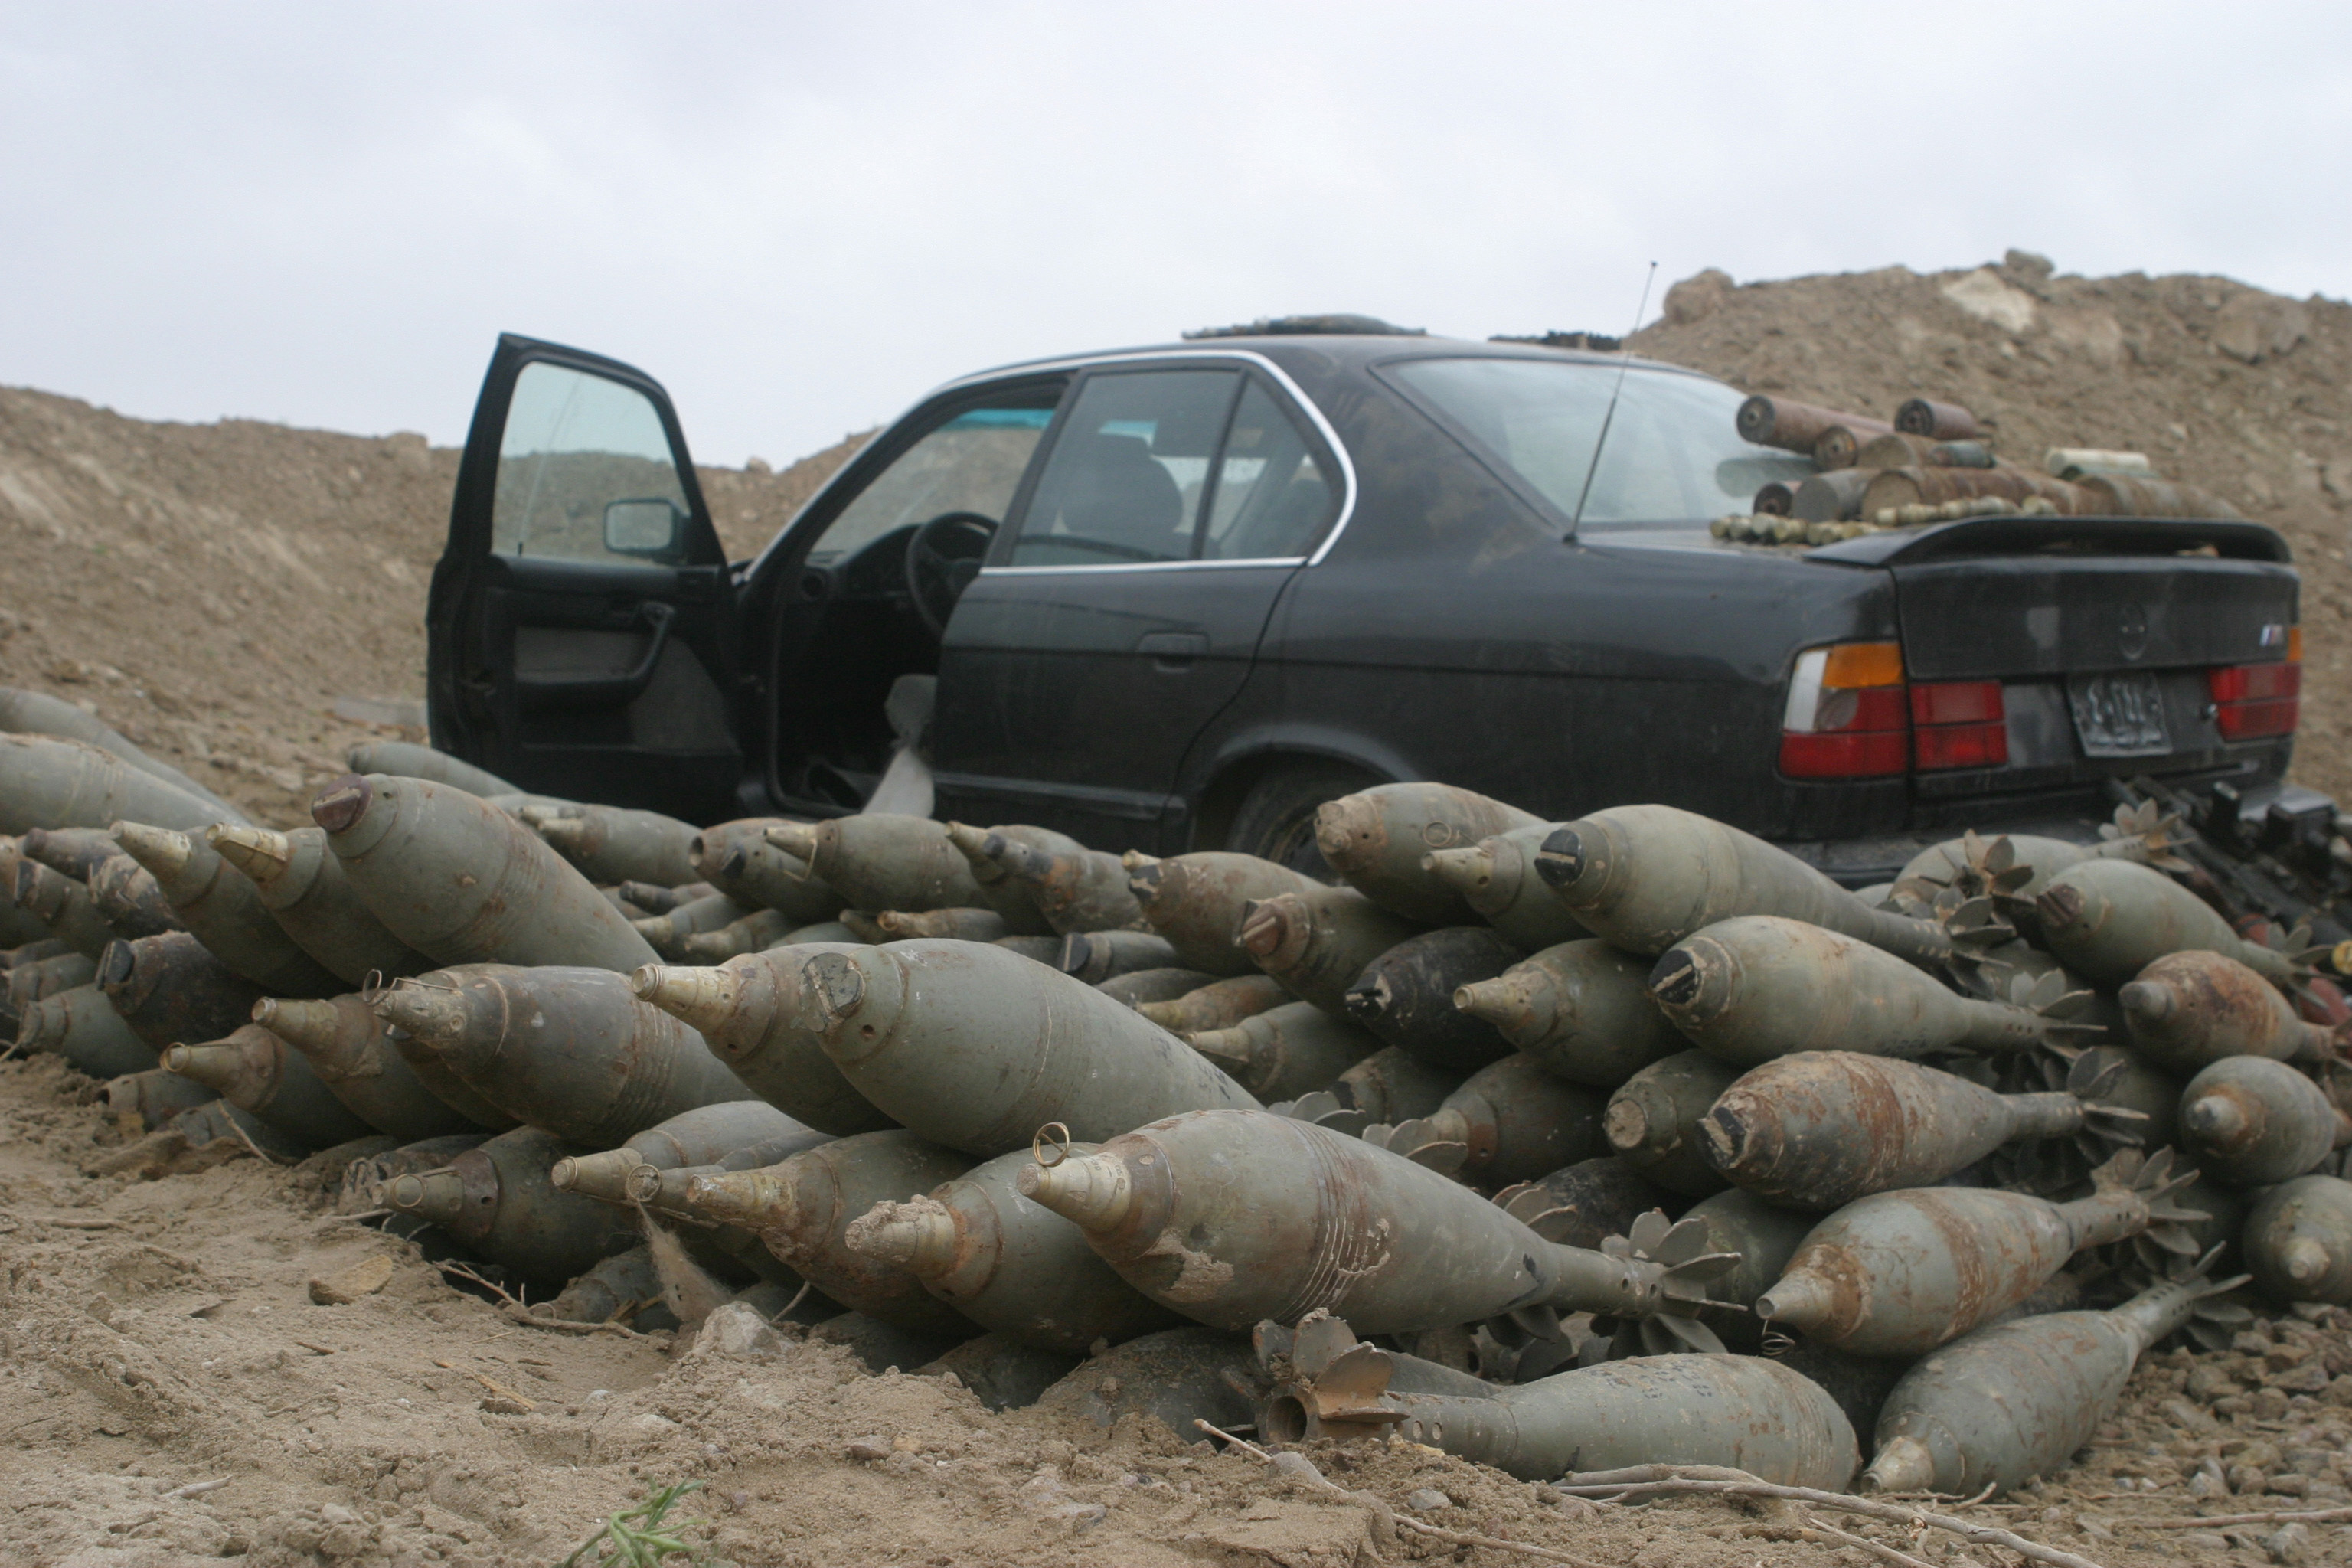 The mortars and the car are part of the 20 weapons caches that U.S. Marines from India Company